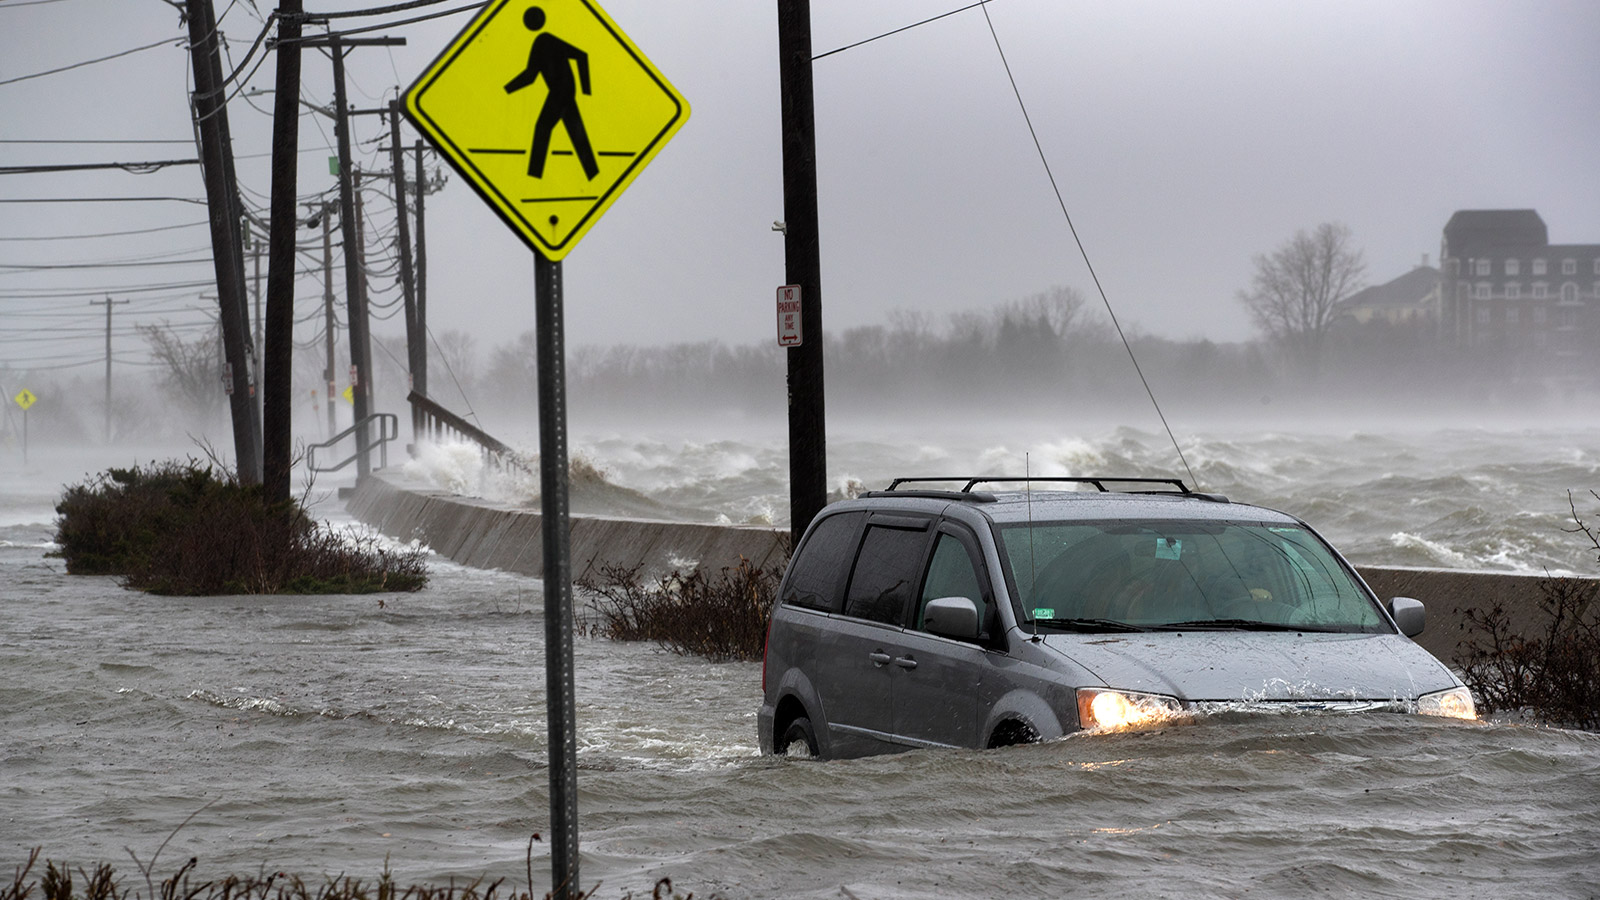 A vehicle navigates a flooded street in the Squantum section of Quincy, MA.